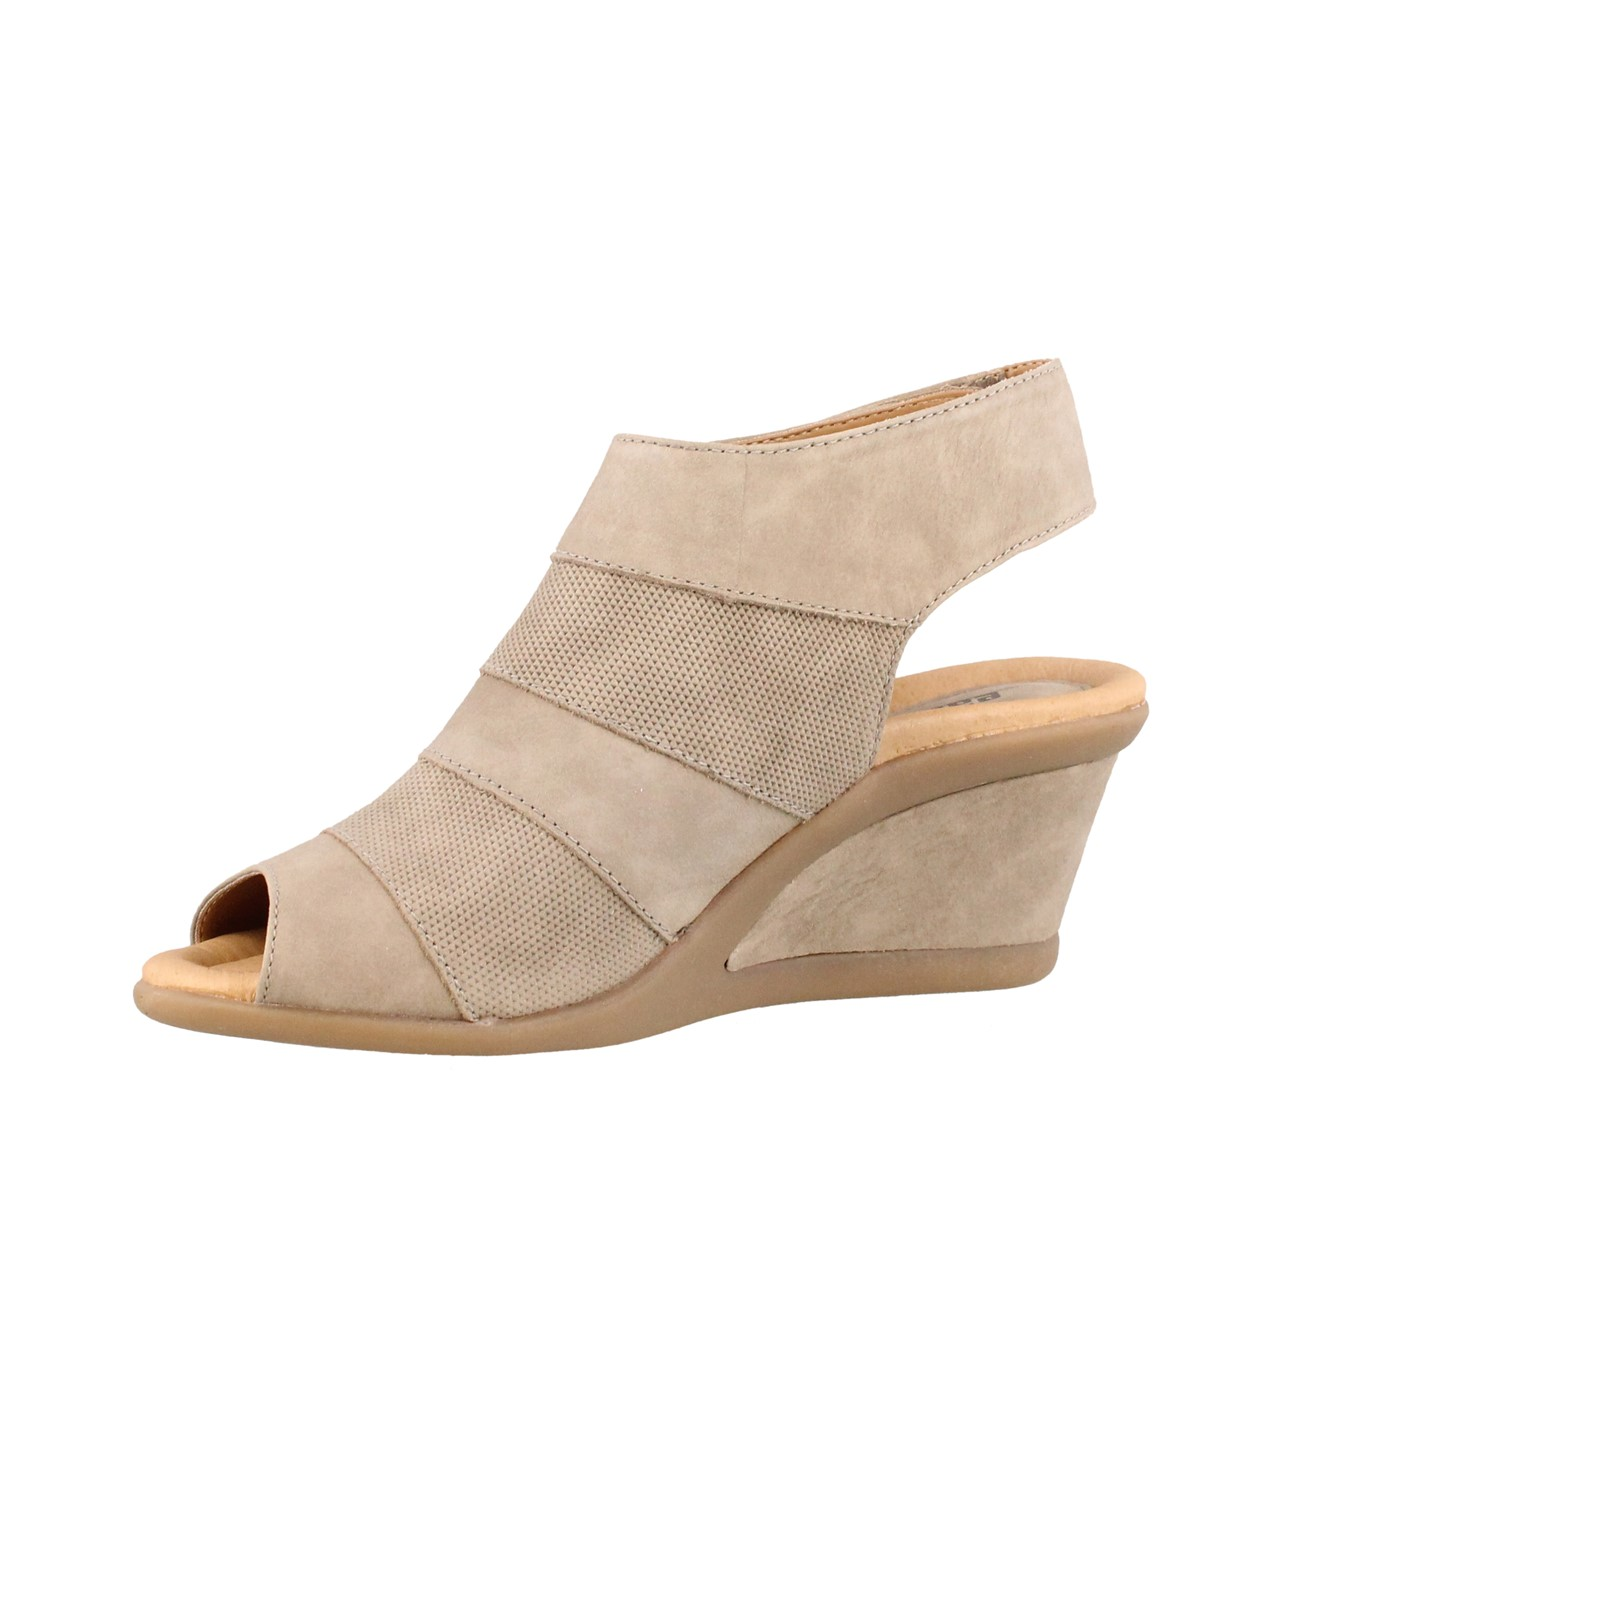 ff9bba039685 Next. add to favorites. Women s Earth